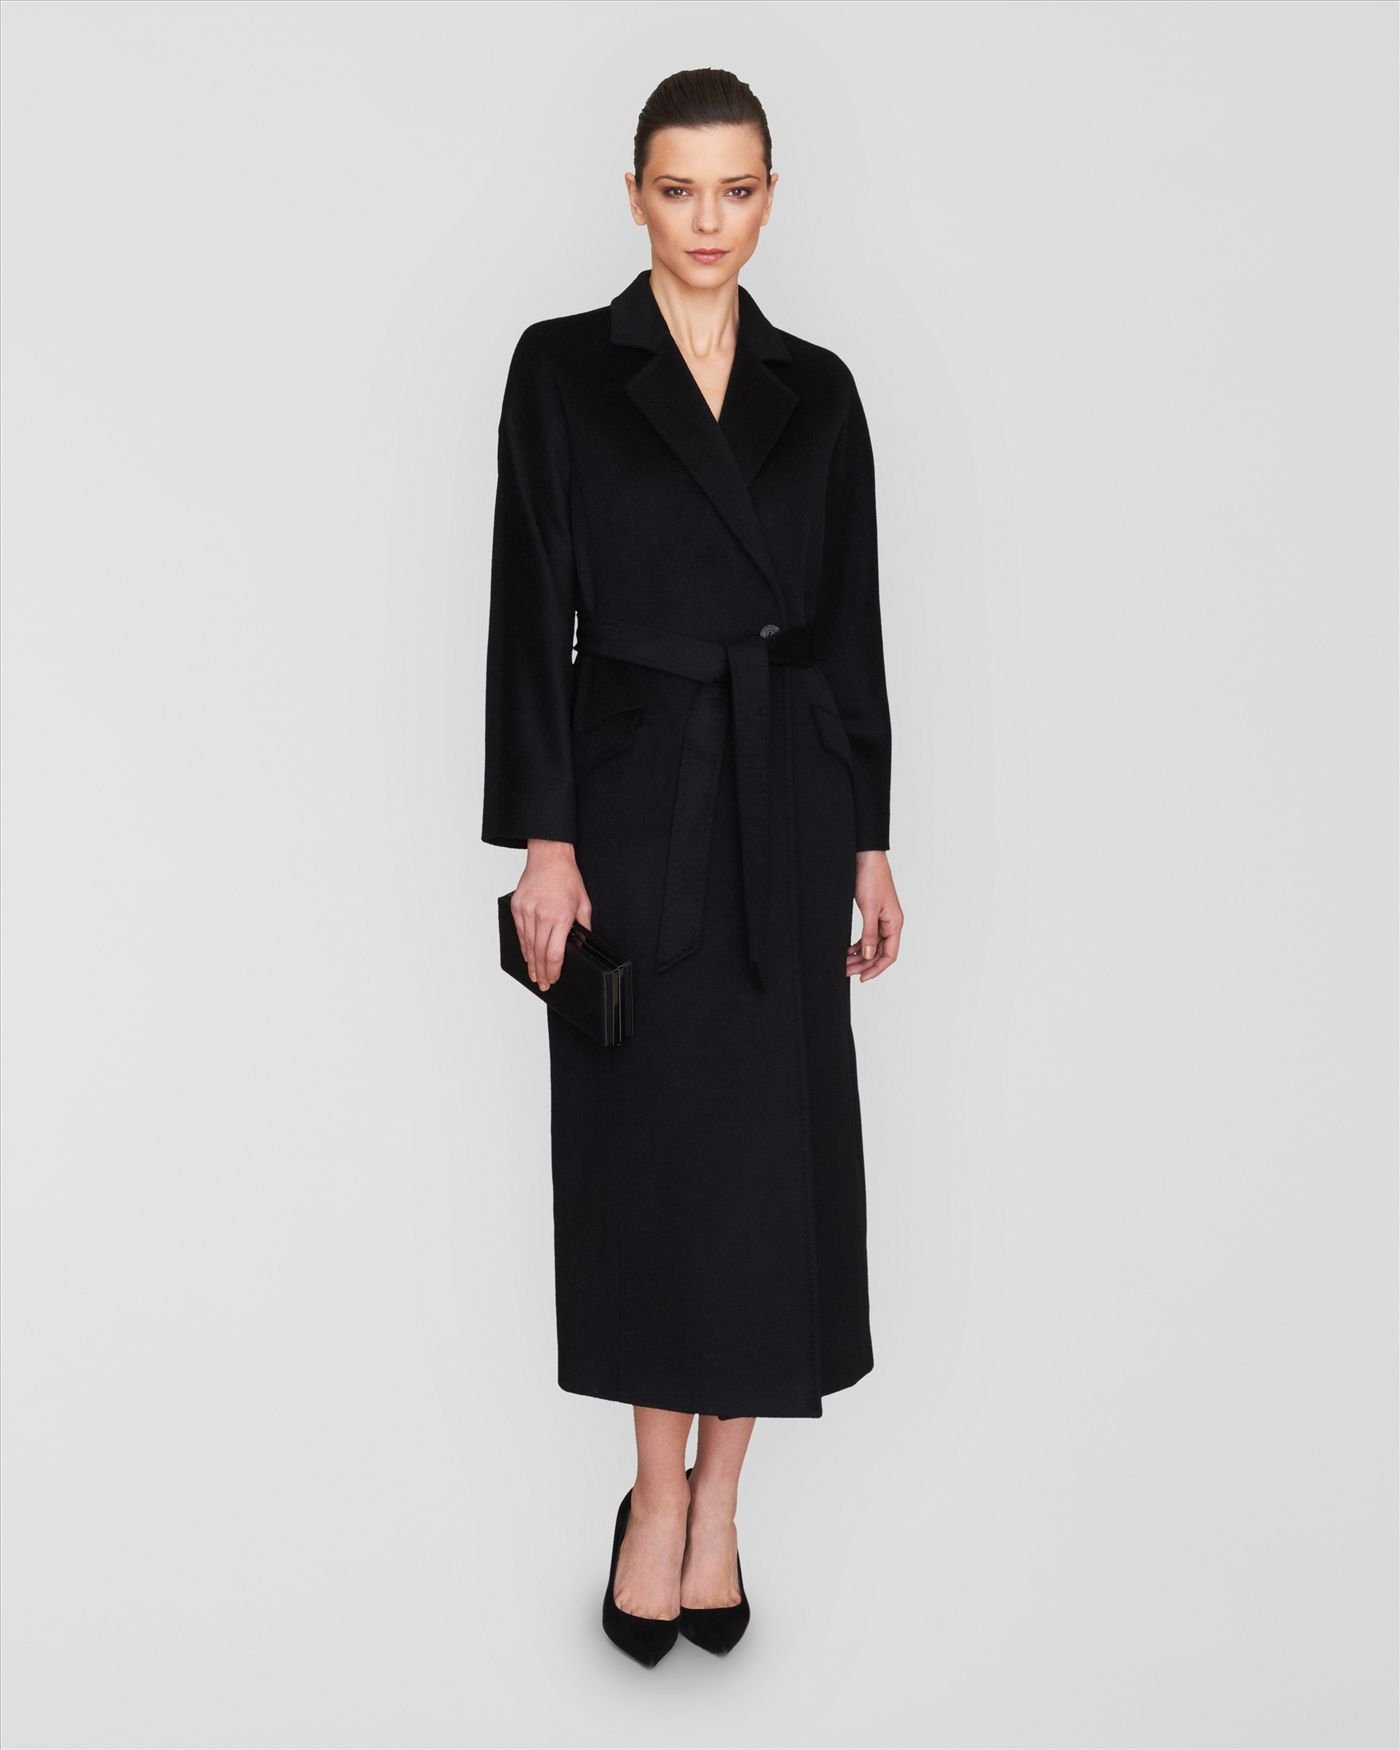 Jaeger Longline Belted Wool Coat in Black | Lyst